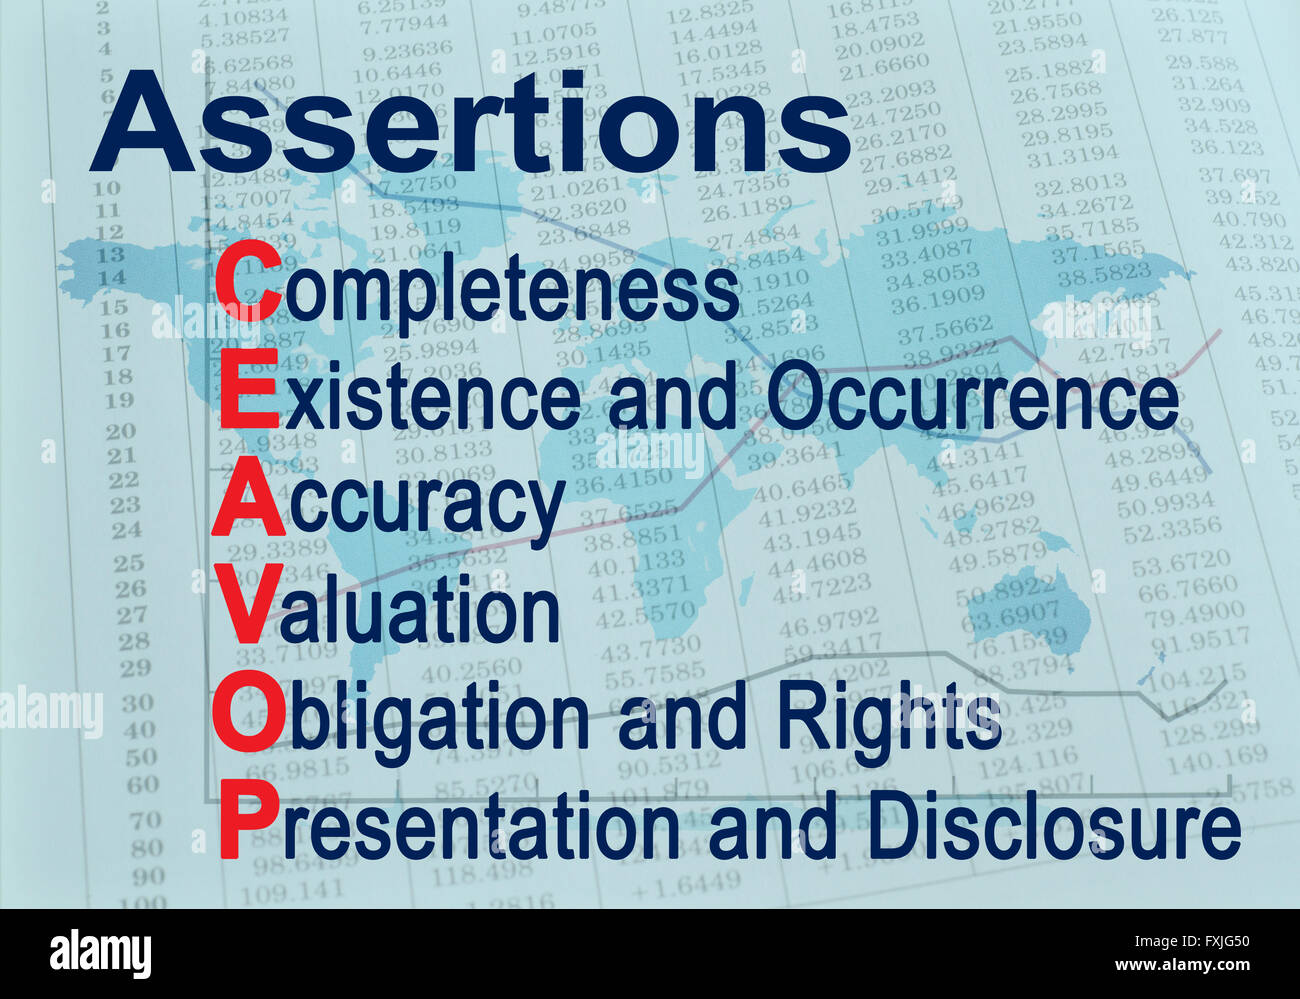 Assertions CEAVOP - Financial auditing acronym - Stock Image